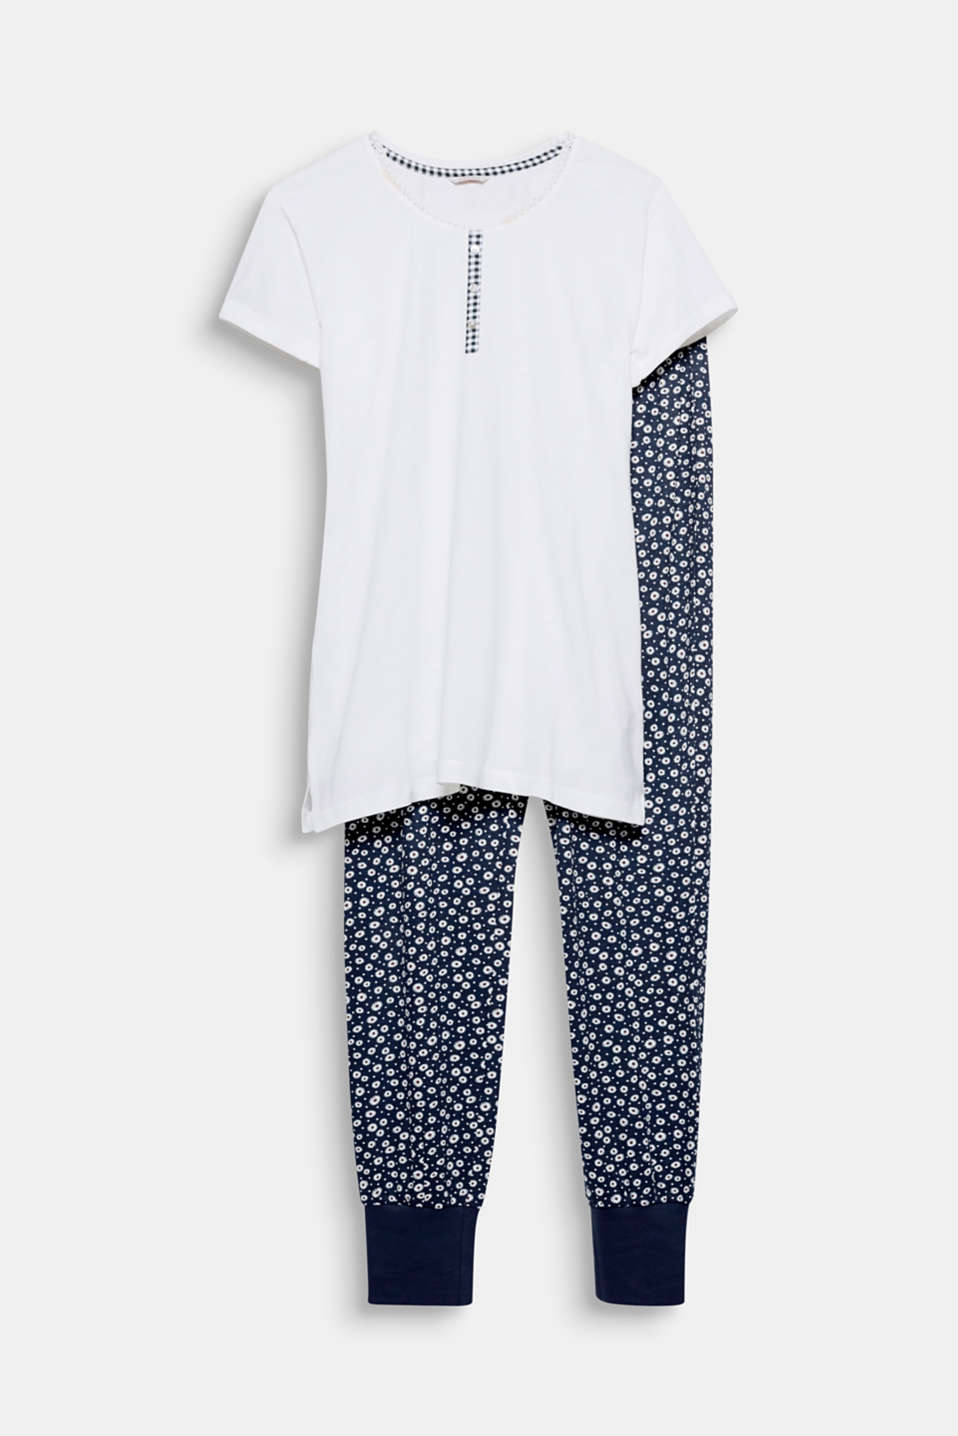 These soft jersey pyjamas with gingham check details and floral tracksuit-style bottoms will bring you sweet dreams!